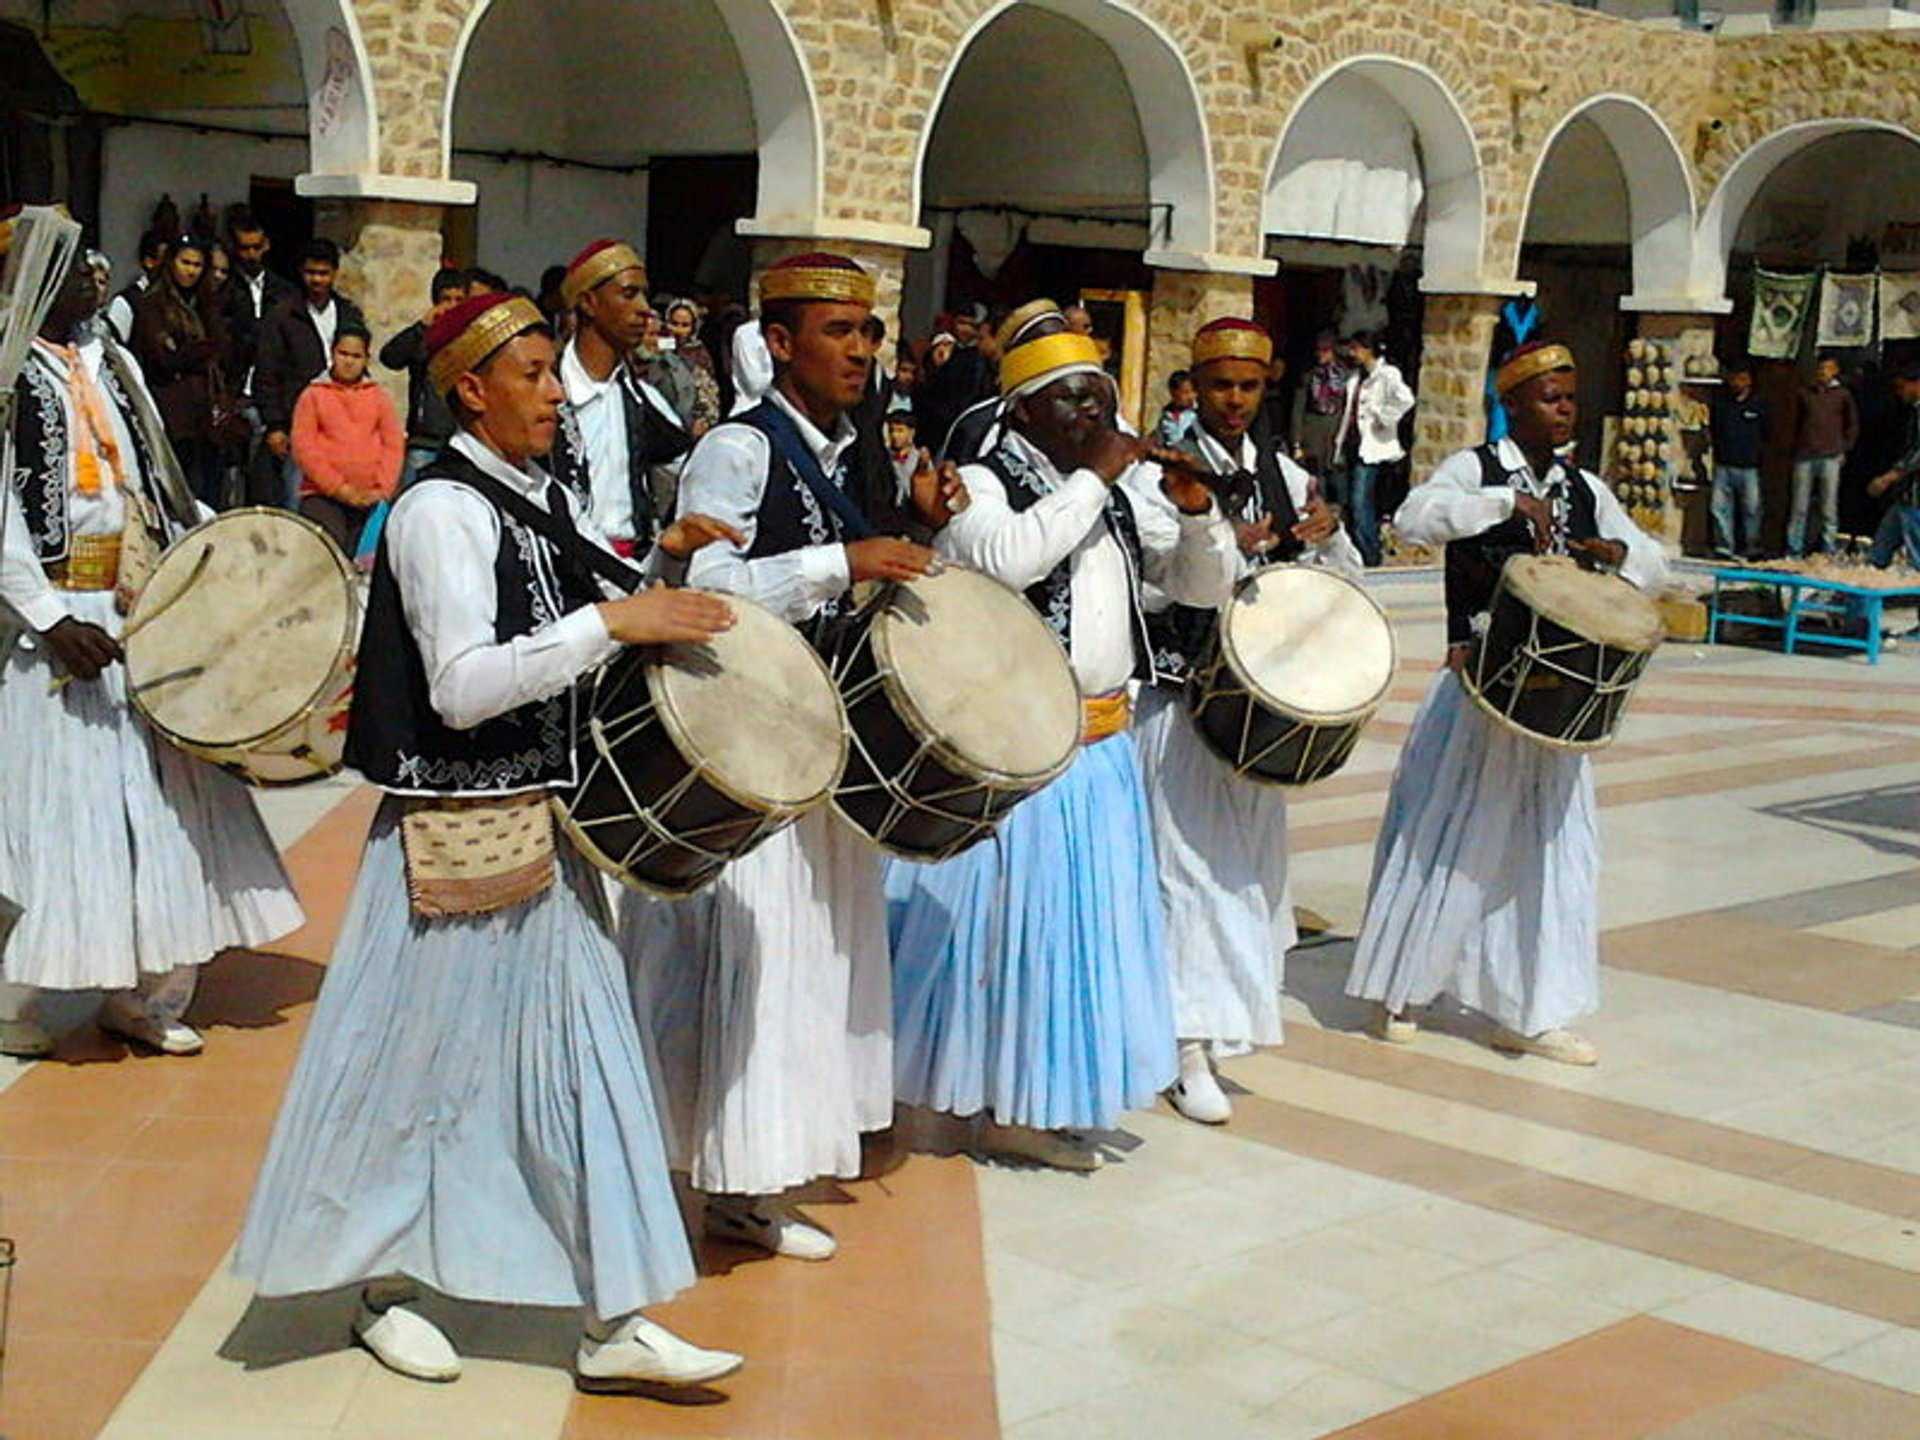 Band consists of drummers and Zukrah player in the old souk of Tataouine, on the occasion of Tataouine's festival 2020